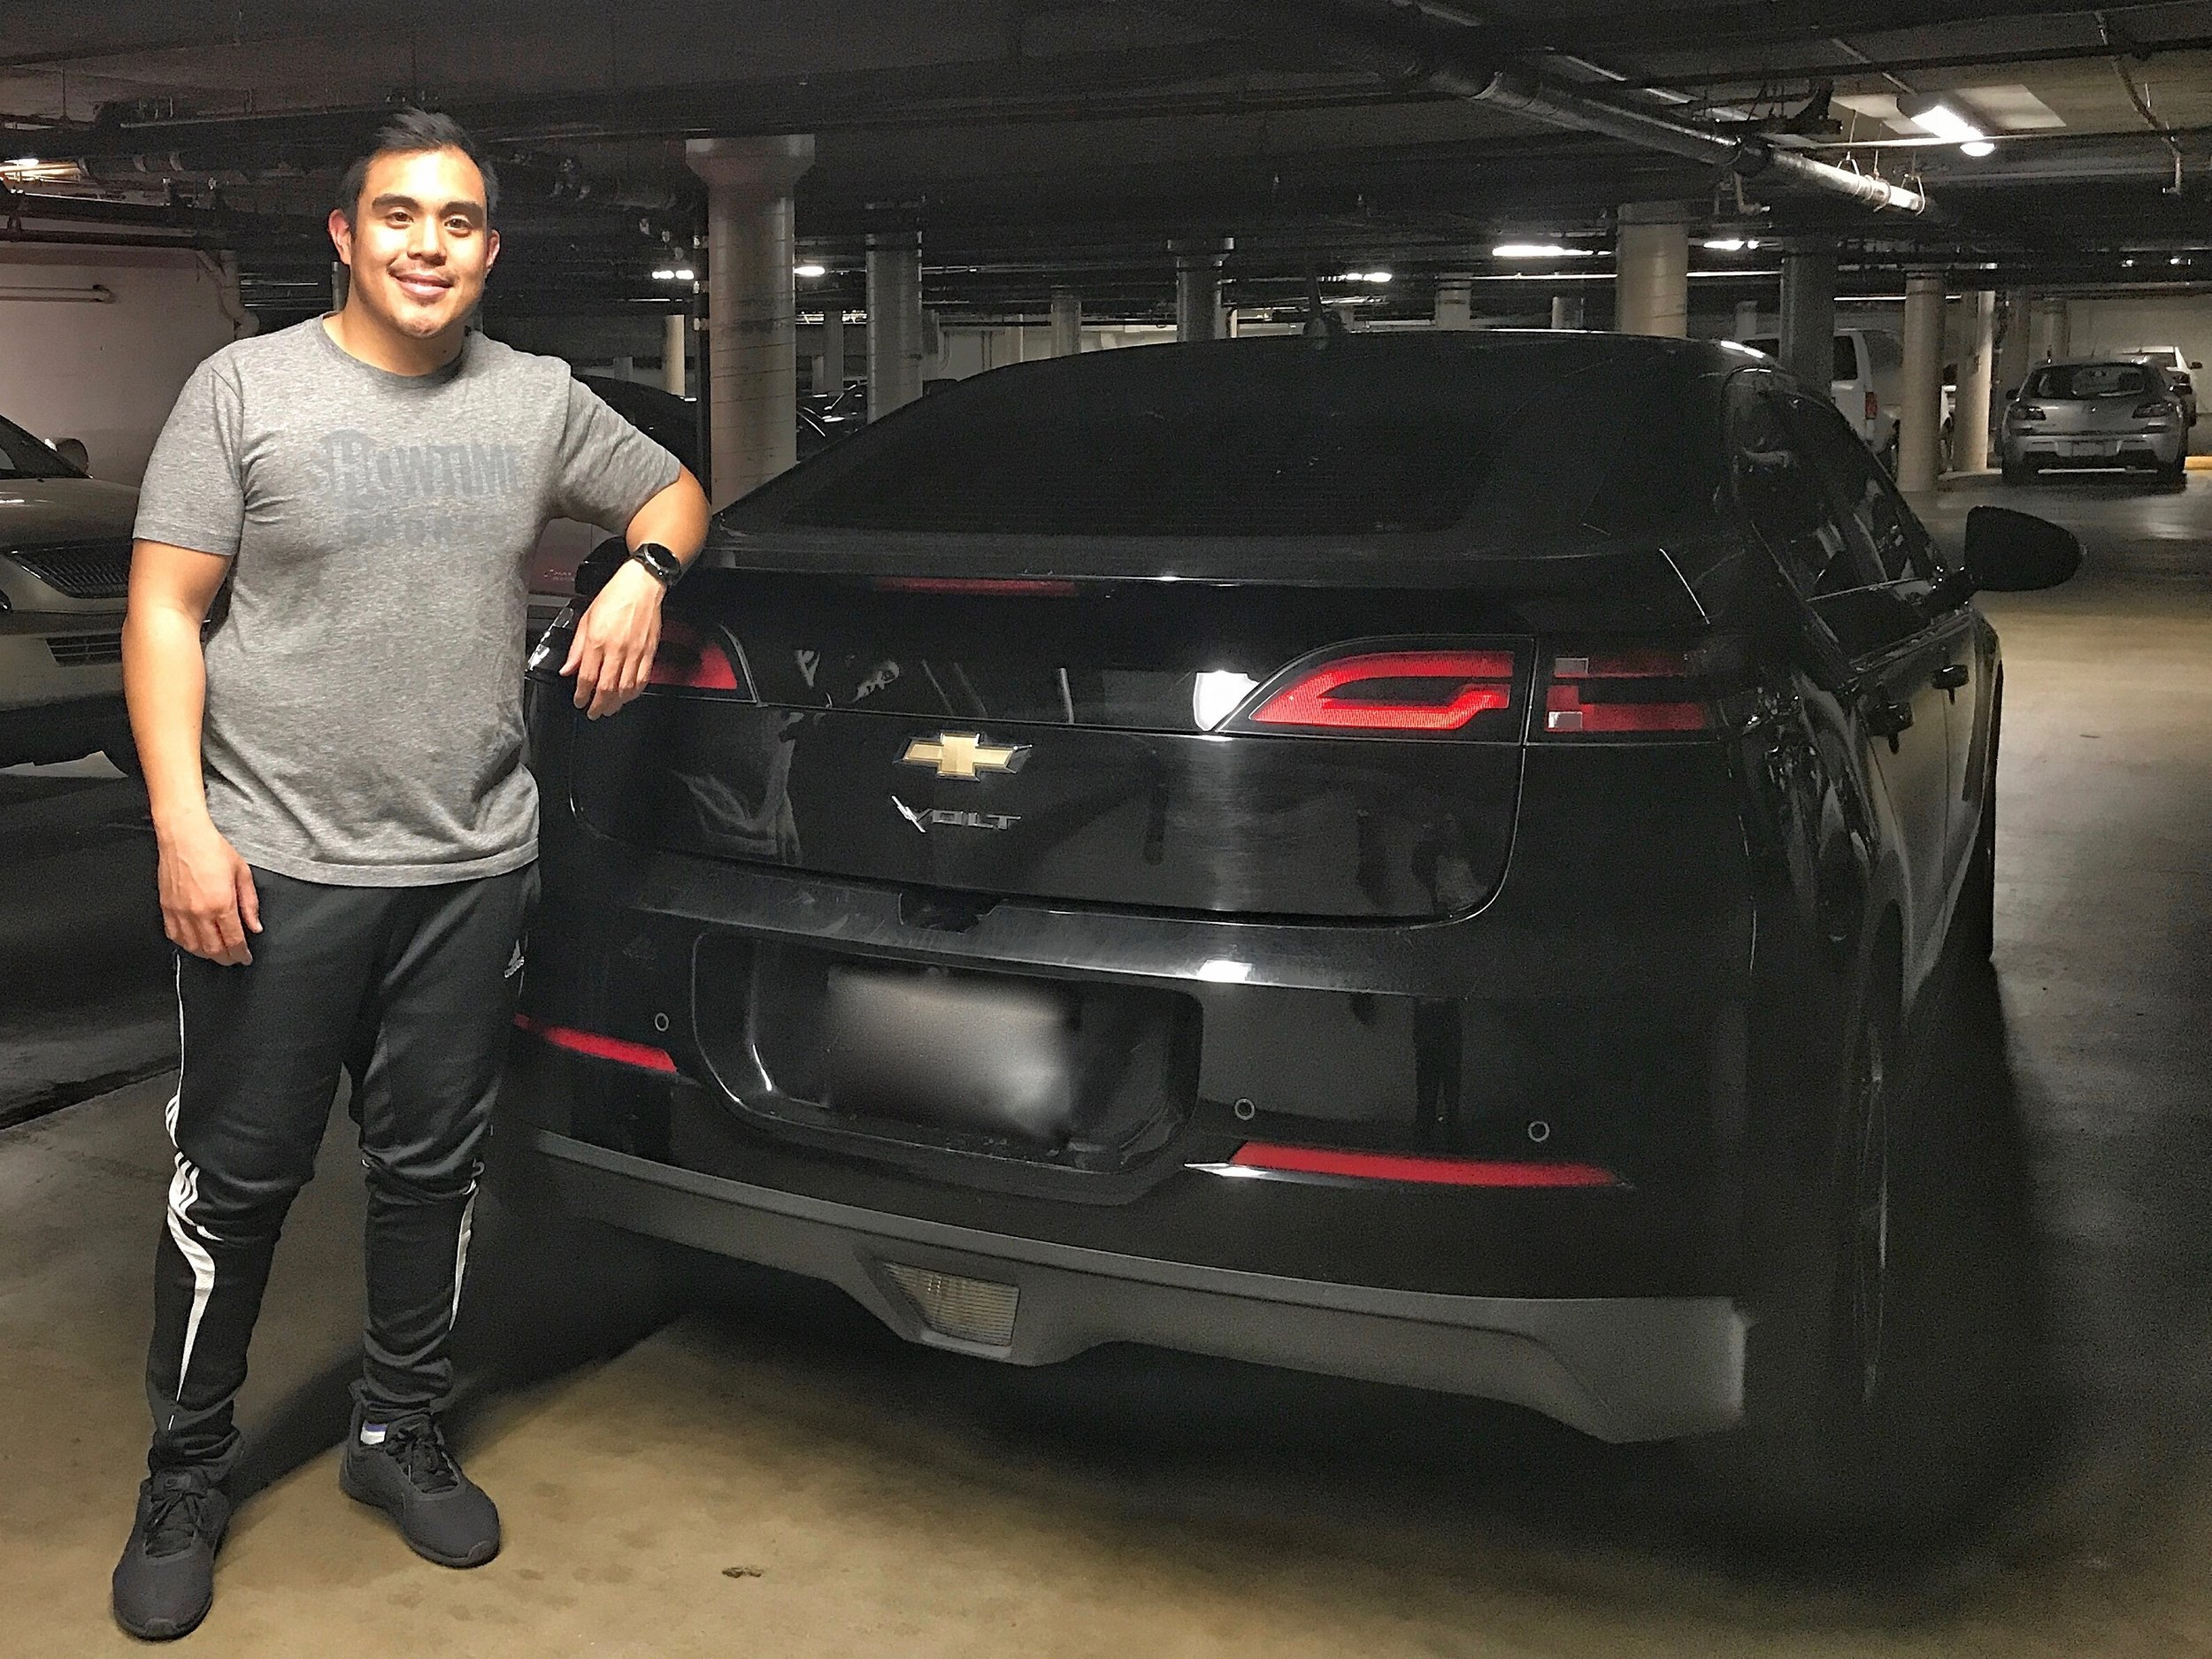 Mark Panes and his new clean car